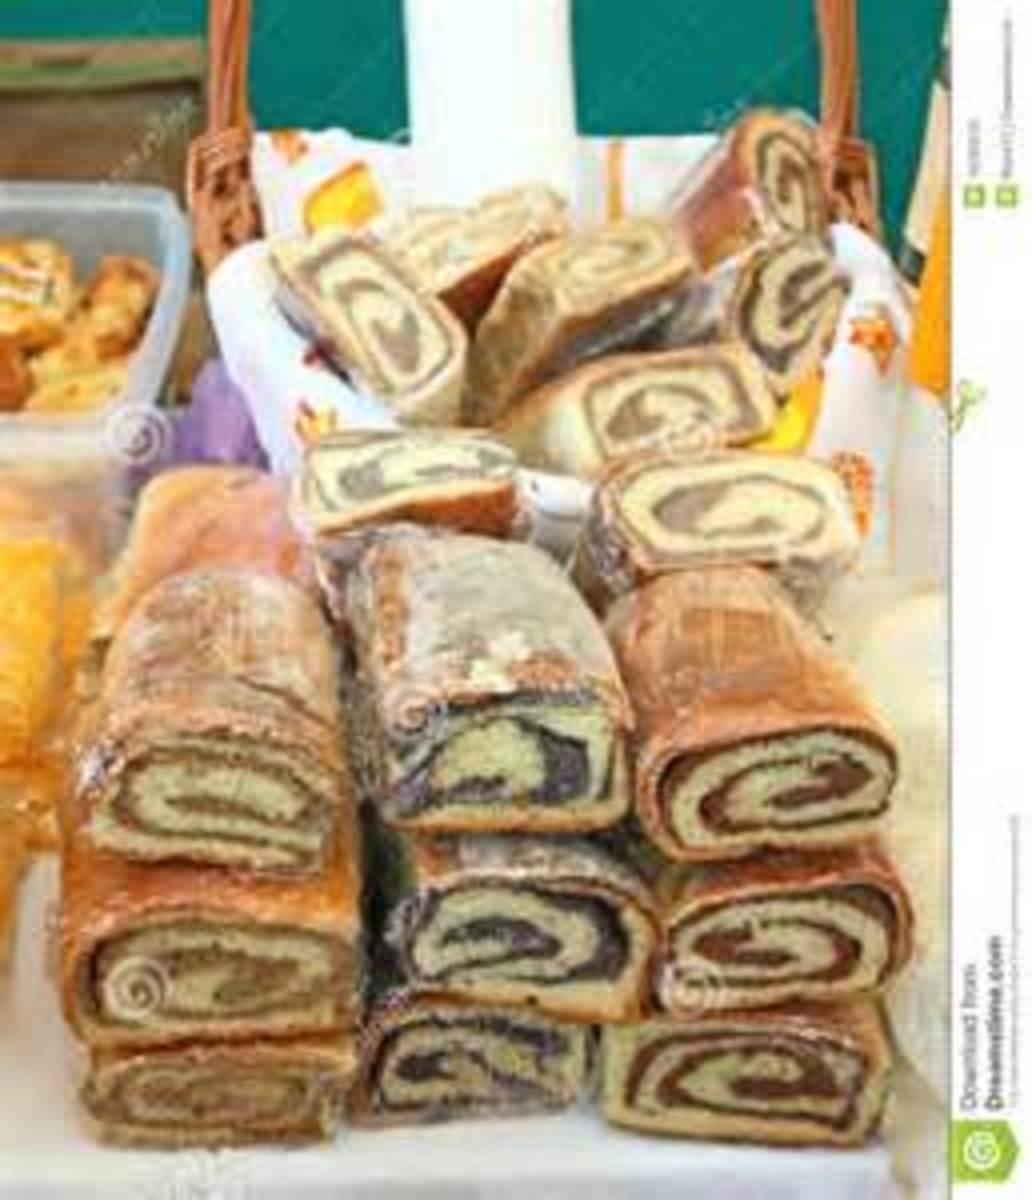 Croatian Nut Rolls